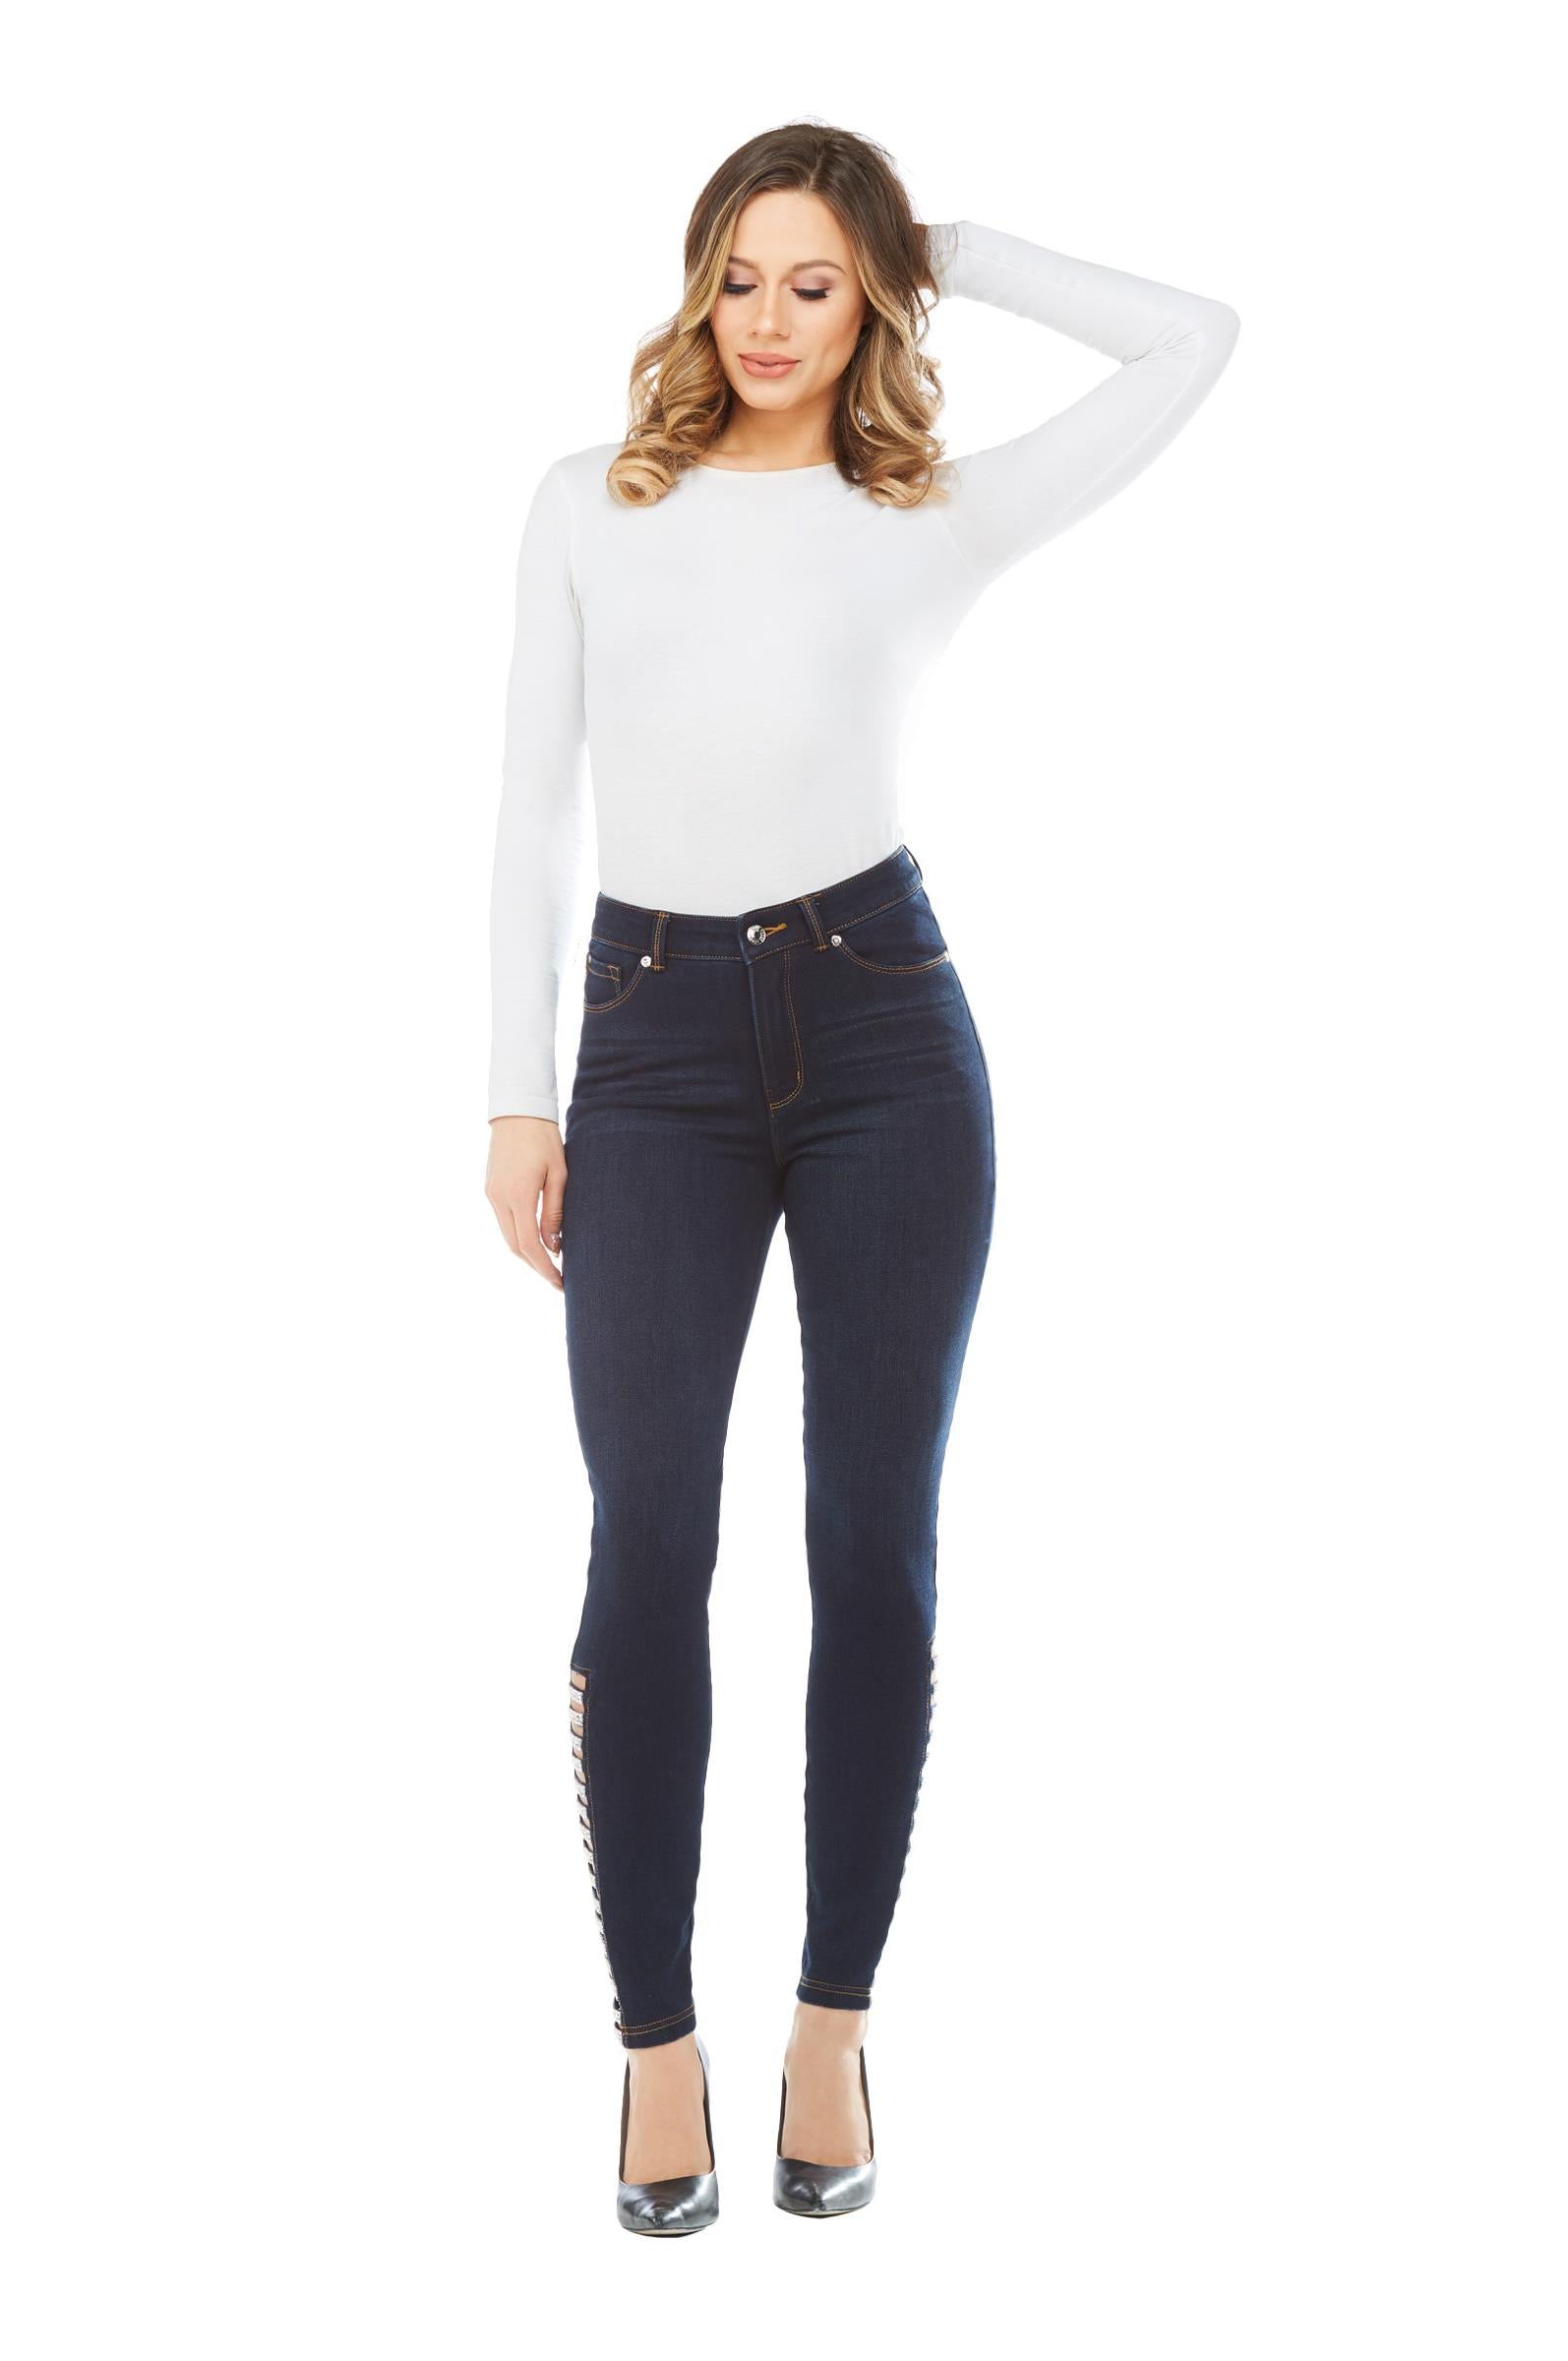 Full view woman wearing Peter Nygard denim skinny jeans with side rhinestone ladder at hemline